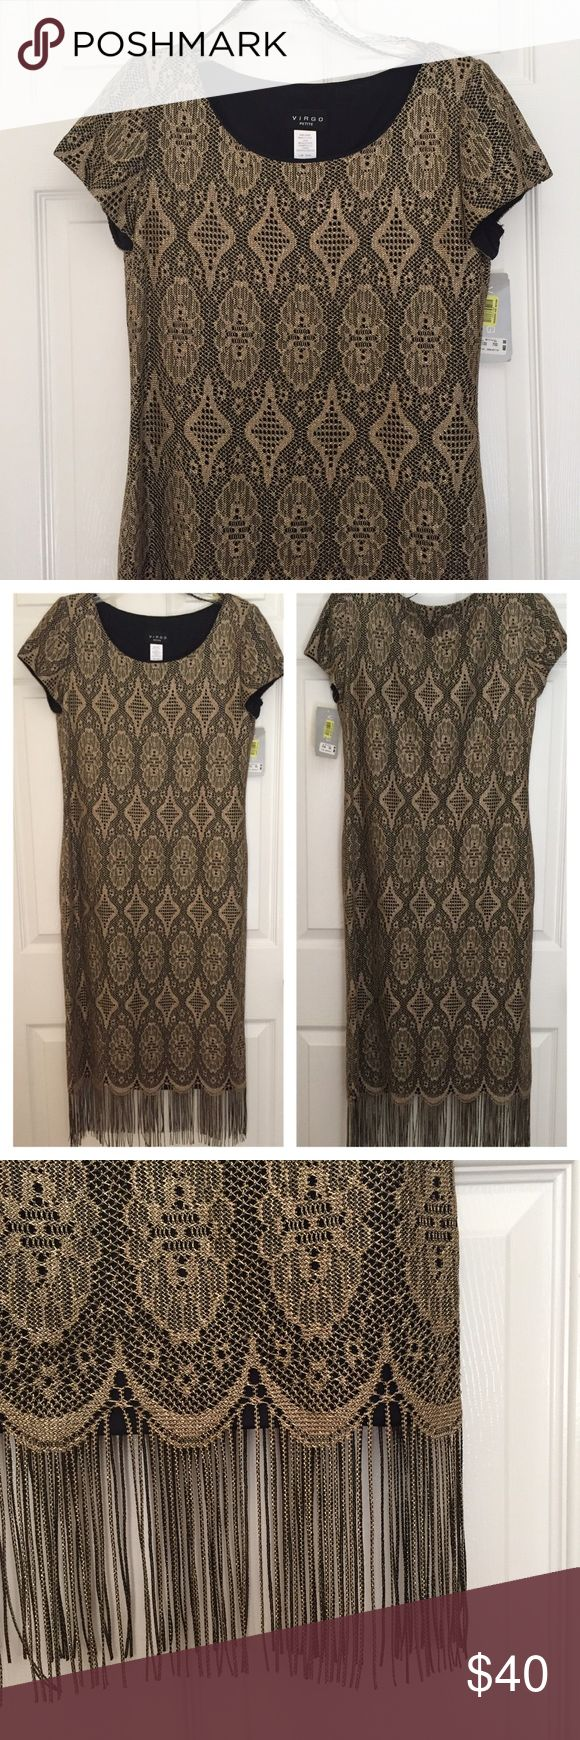 NWT gold crochet dress NWT gold crochet formal dress. Feature scoop neck, short sleeves, black lining, and fringe detail at hem. Virgo Dresses